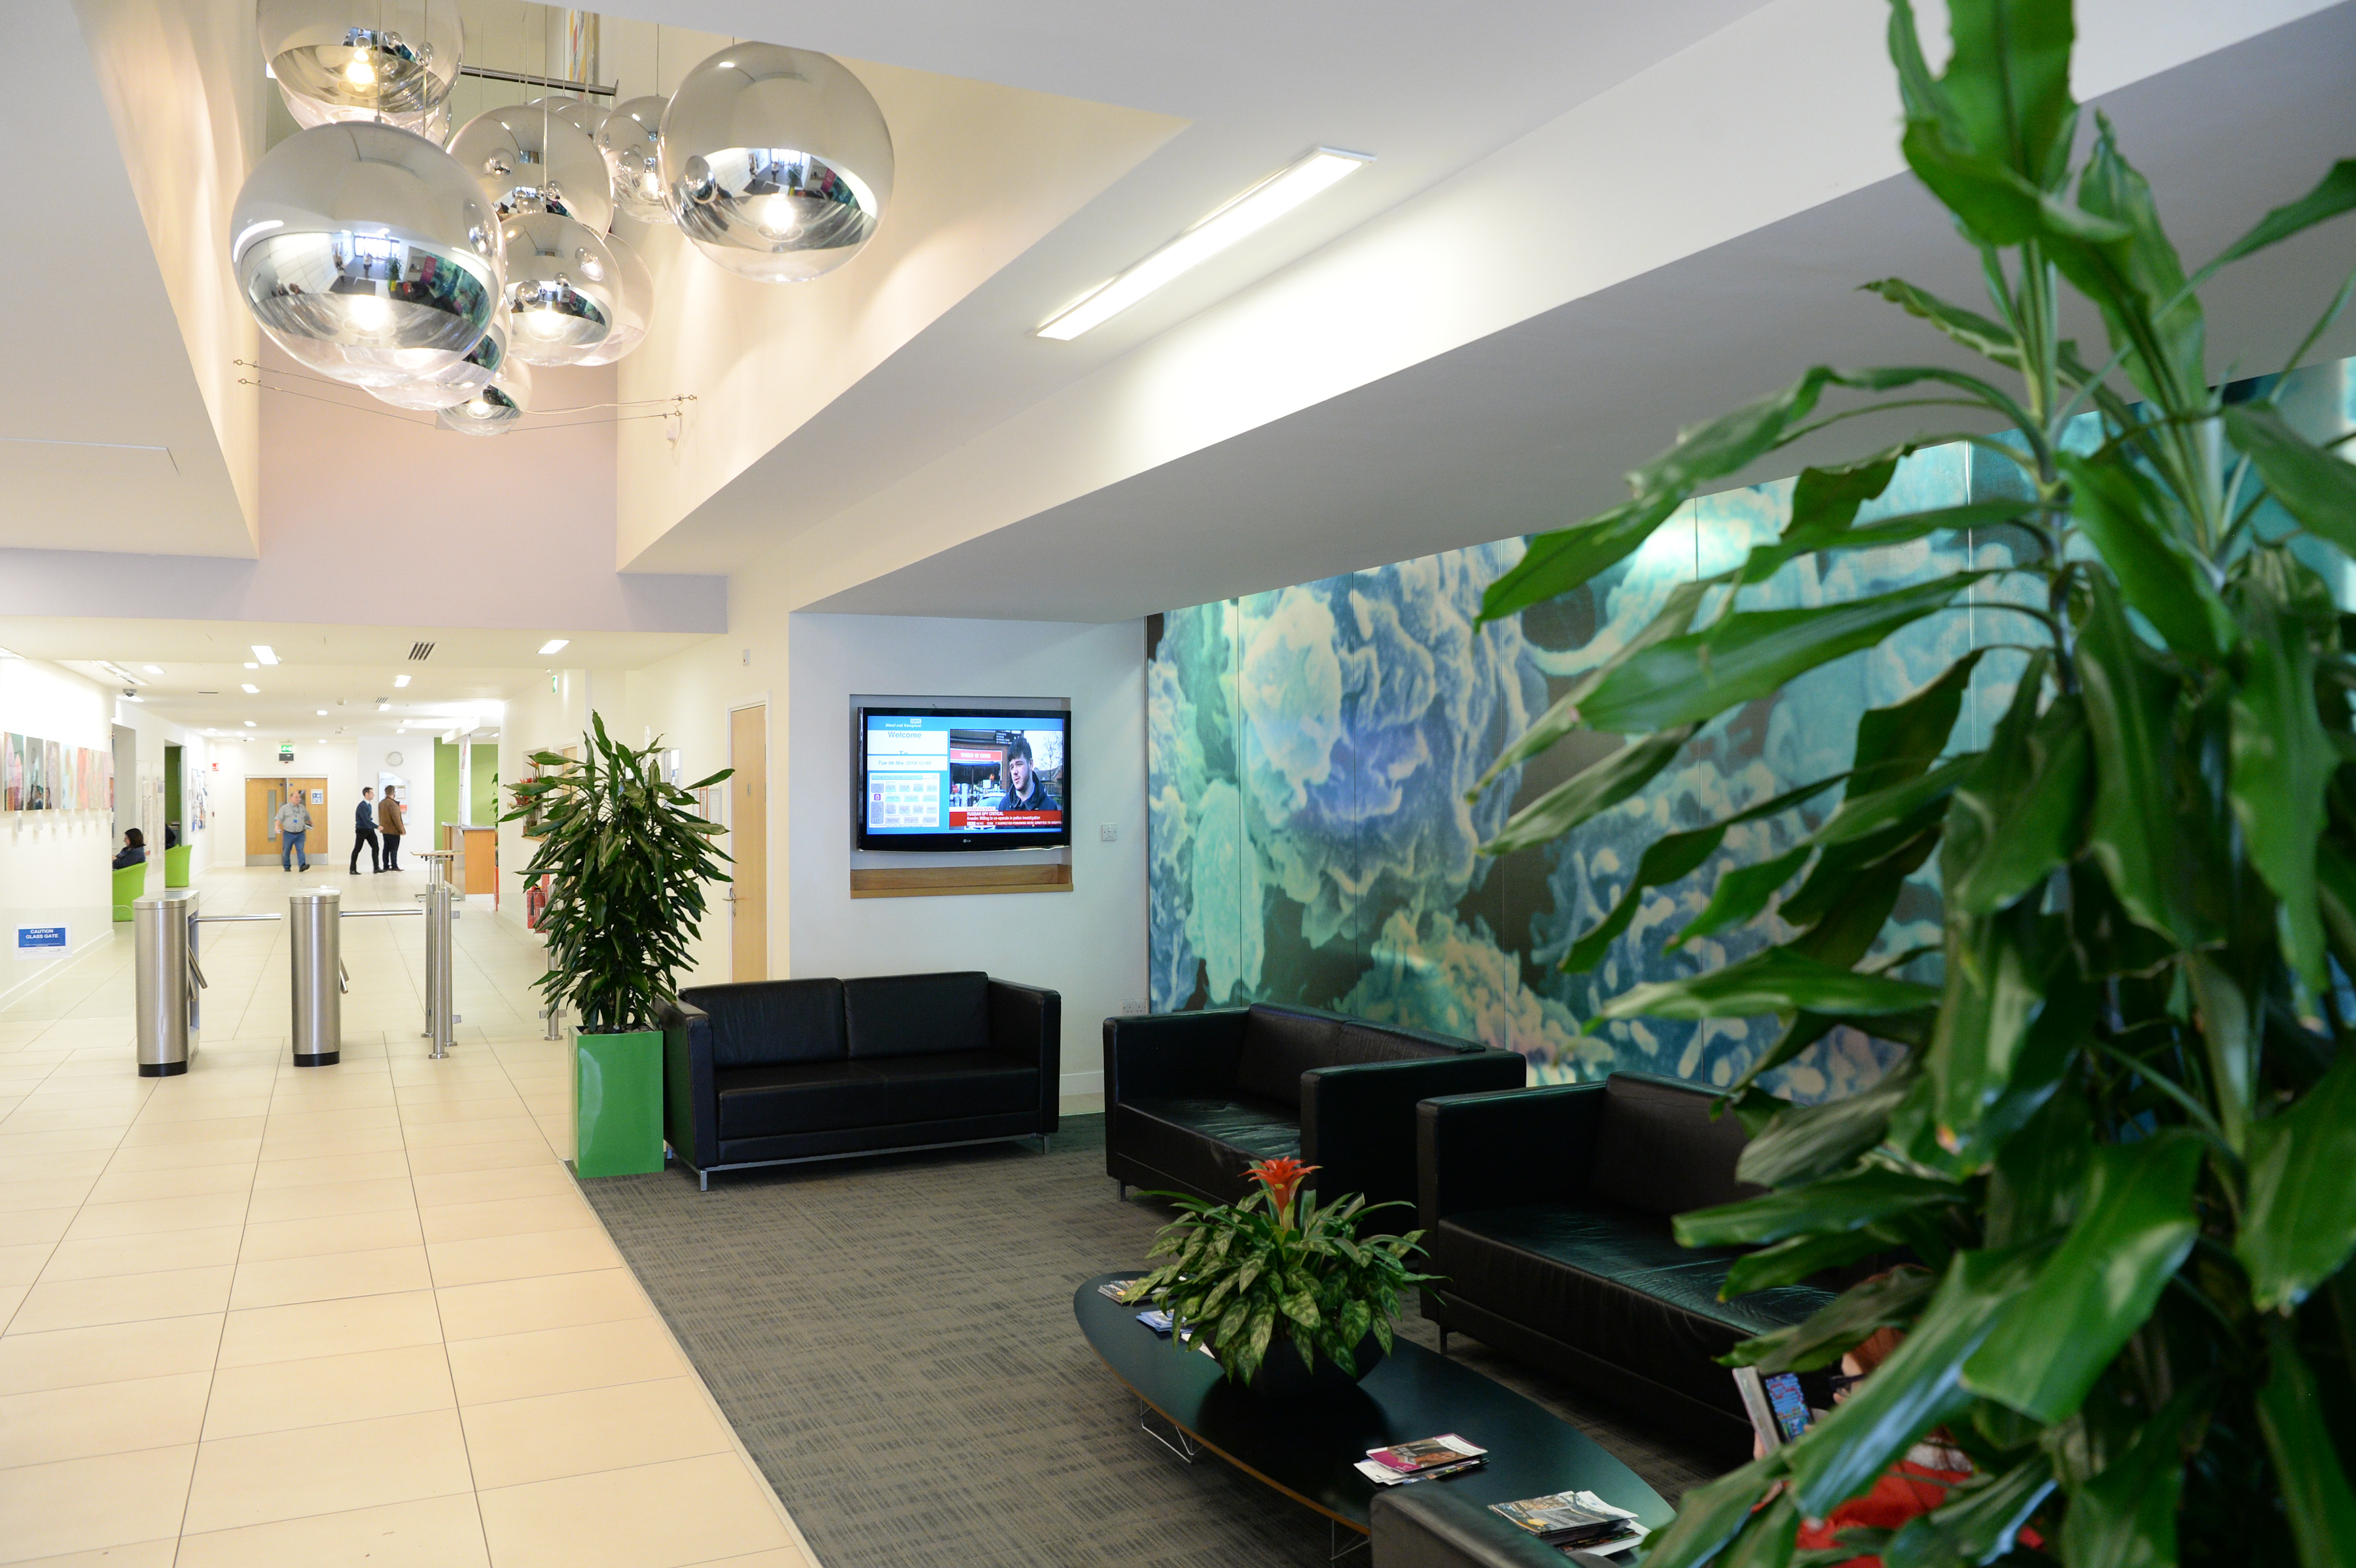 The reception area at NHSBT's Filton centre